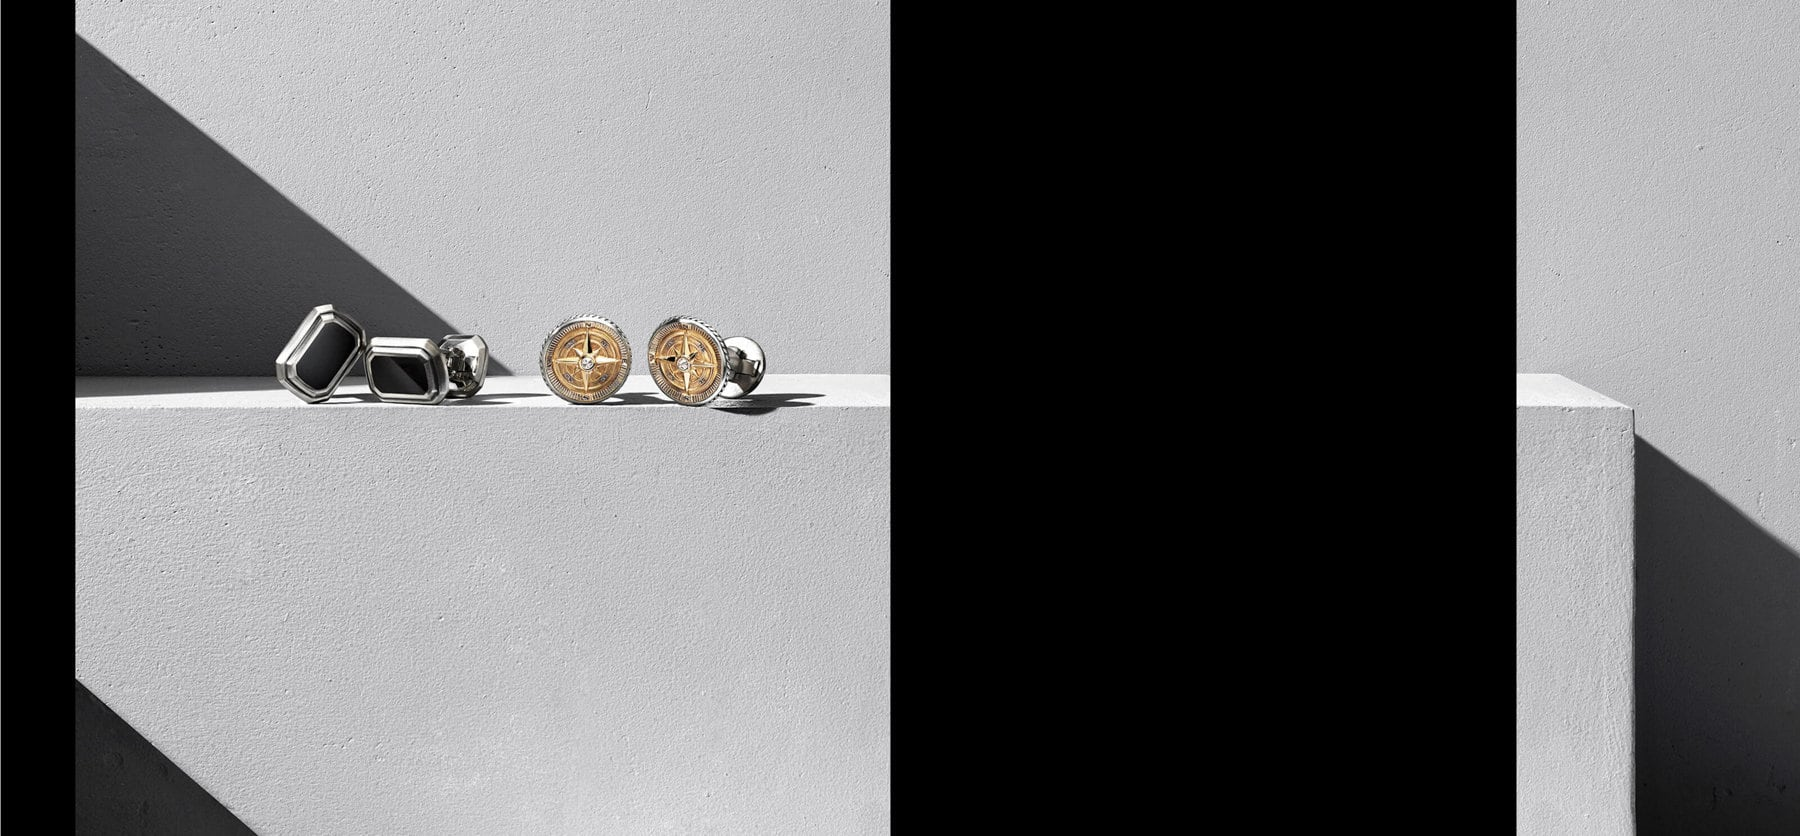 A color photograph shows two pairs of David Yurman cufflinks from the Deco and Maritime collections atop a grey background. Each pair is crafted from sterling silver and onyx or sterling silver and 18K yellow gold with diamonds.